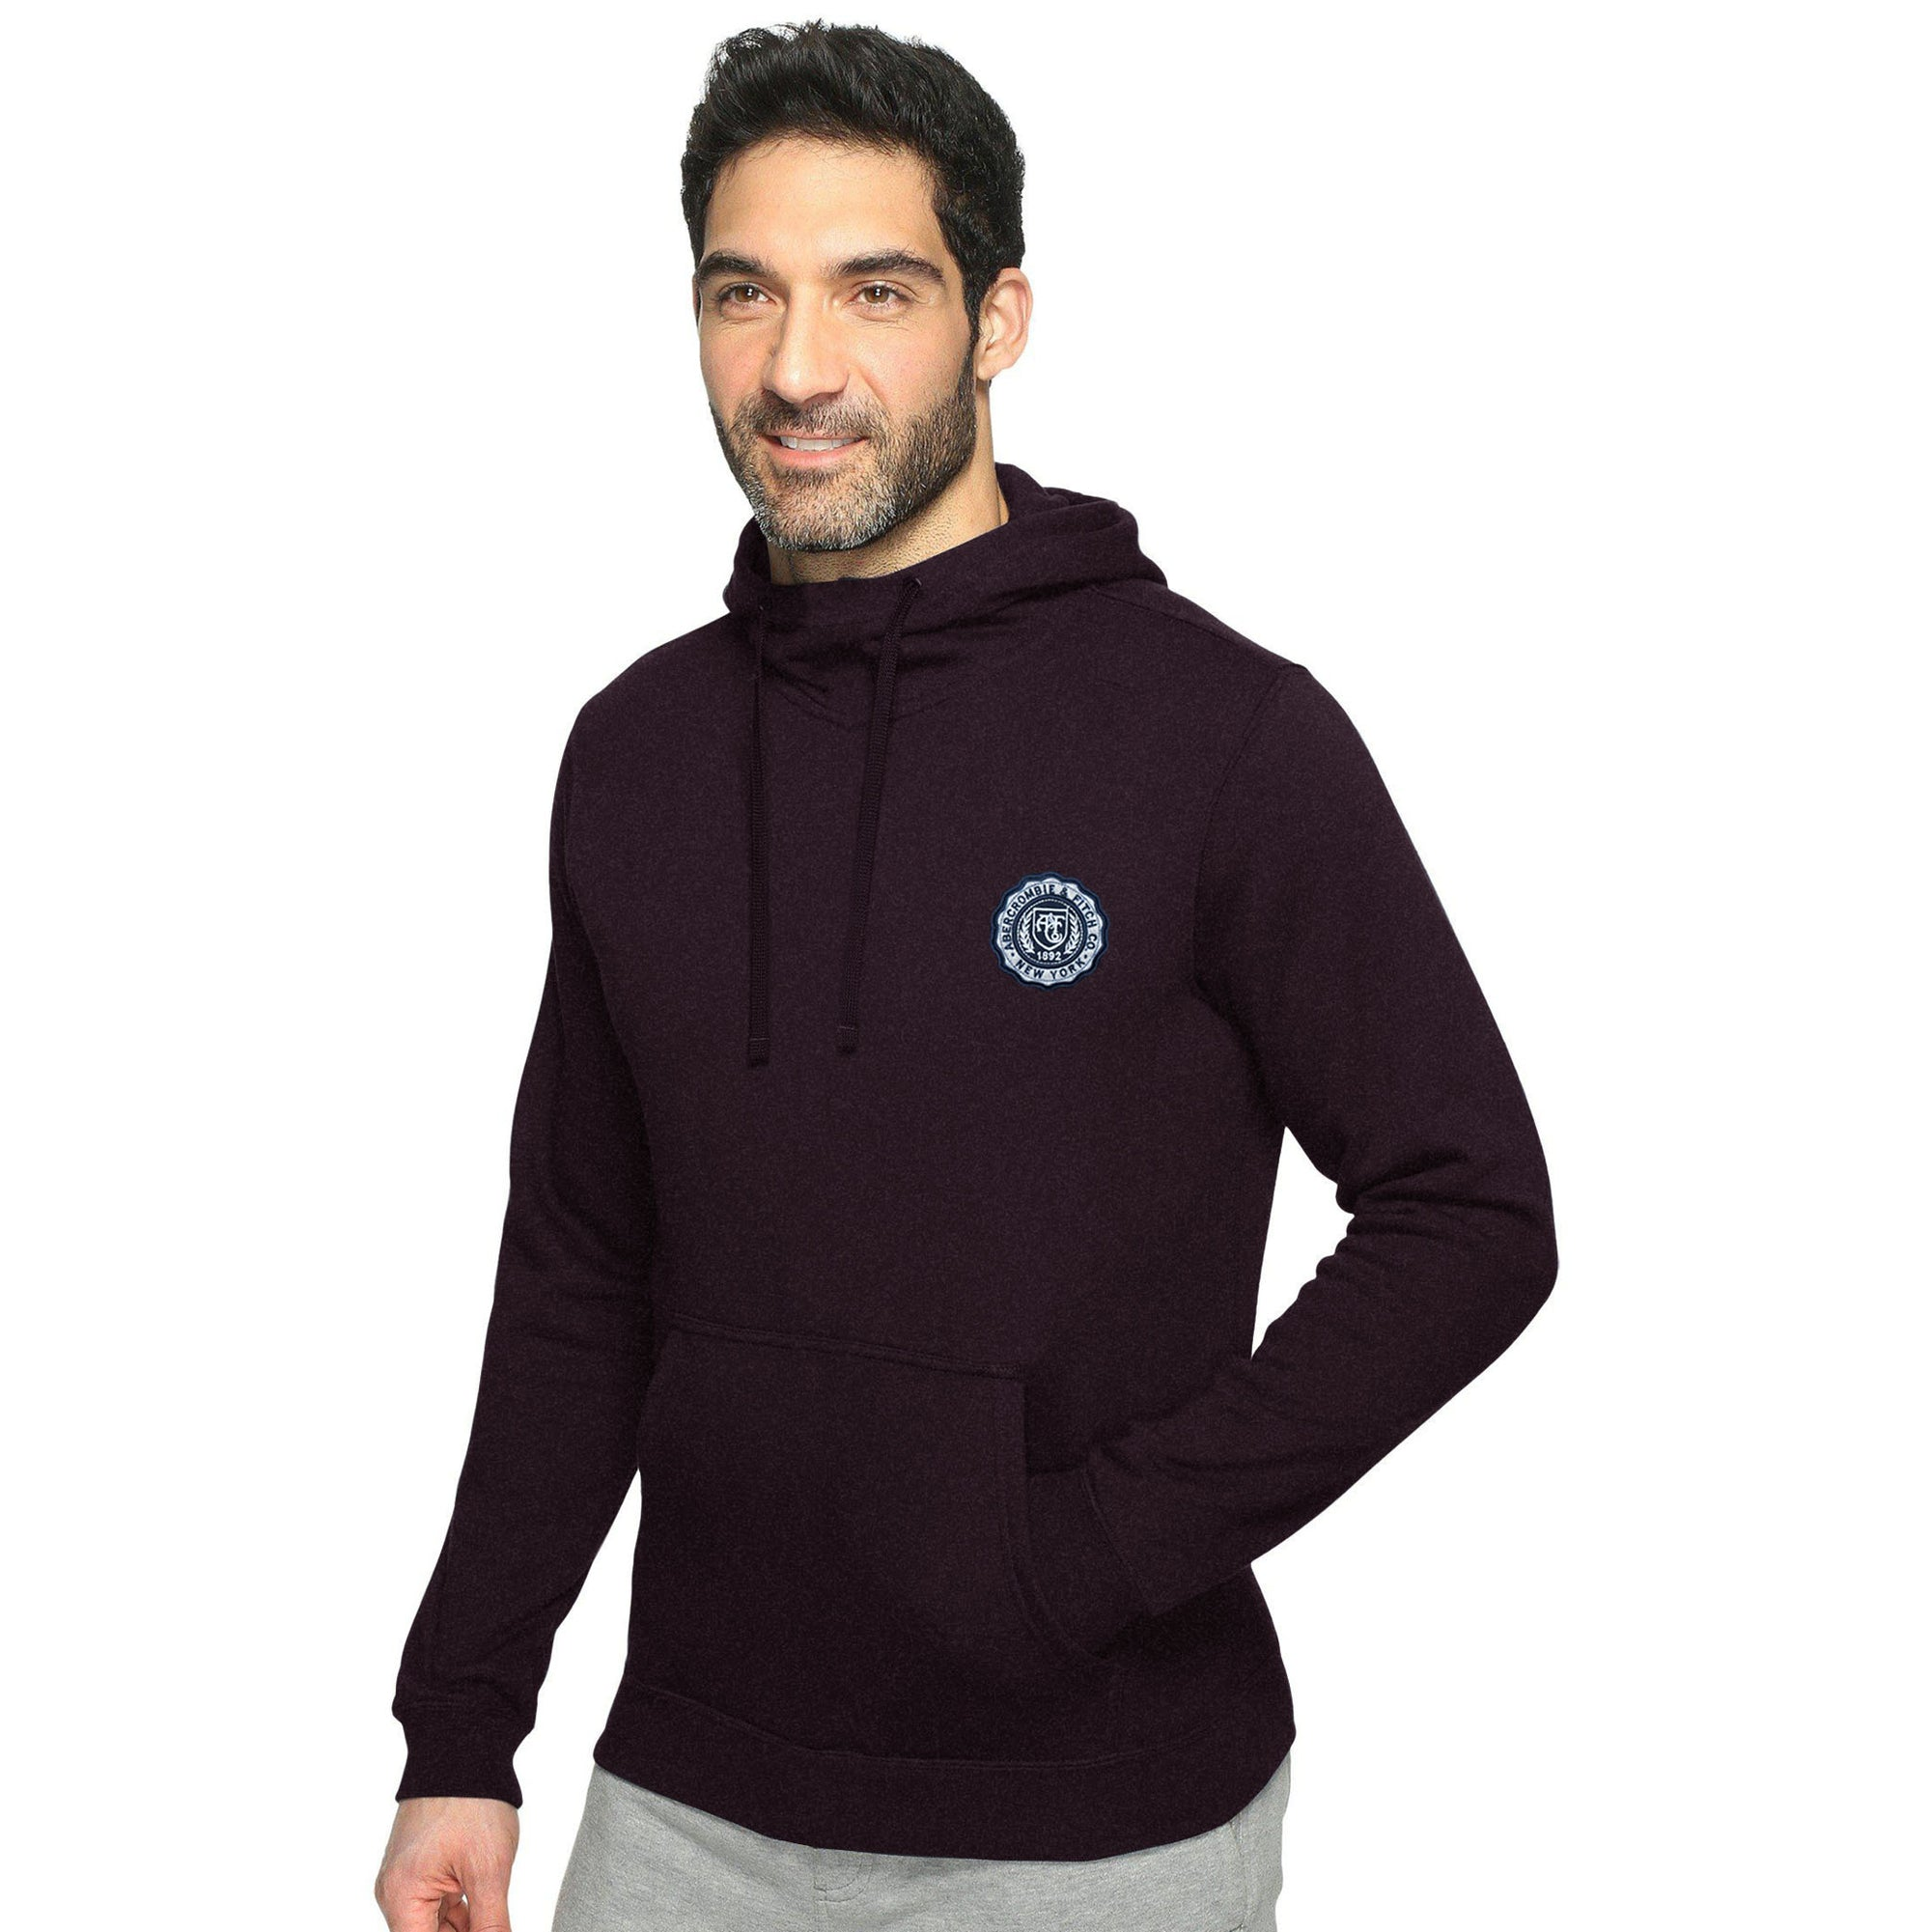 A&F Fleece Pullover Hoodie For Men-Dark Maroon Melange-BE6636